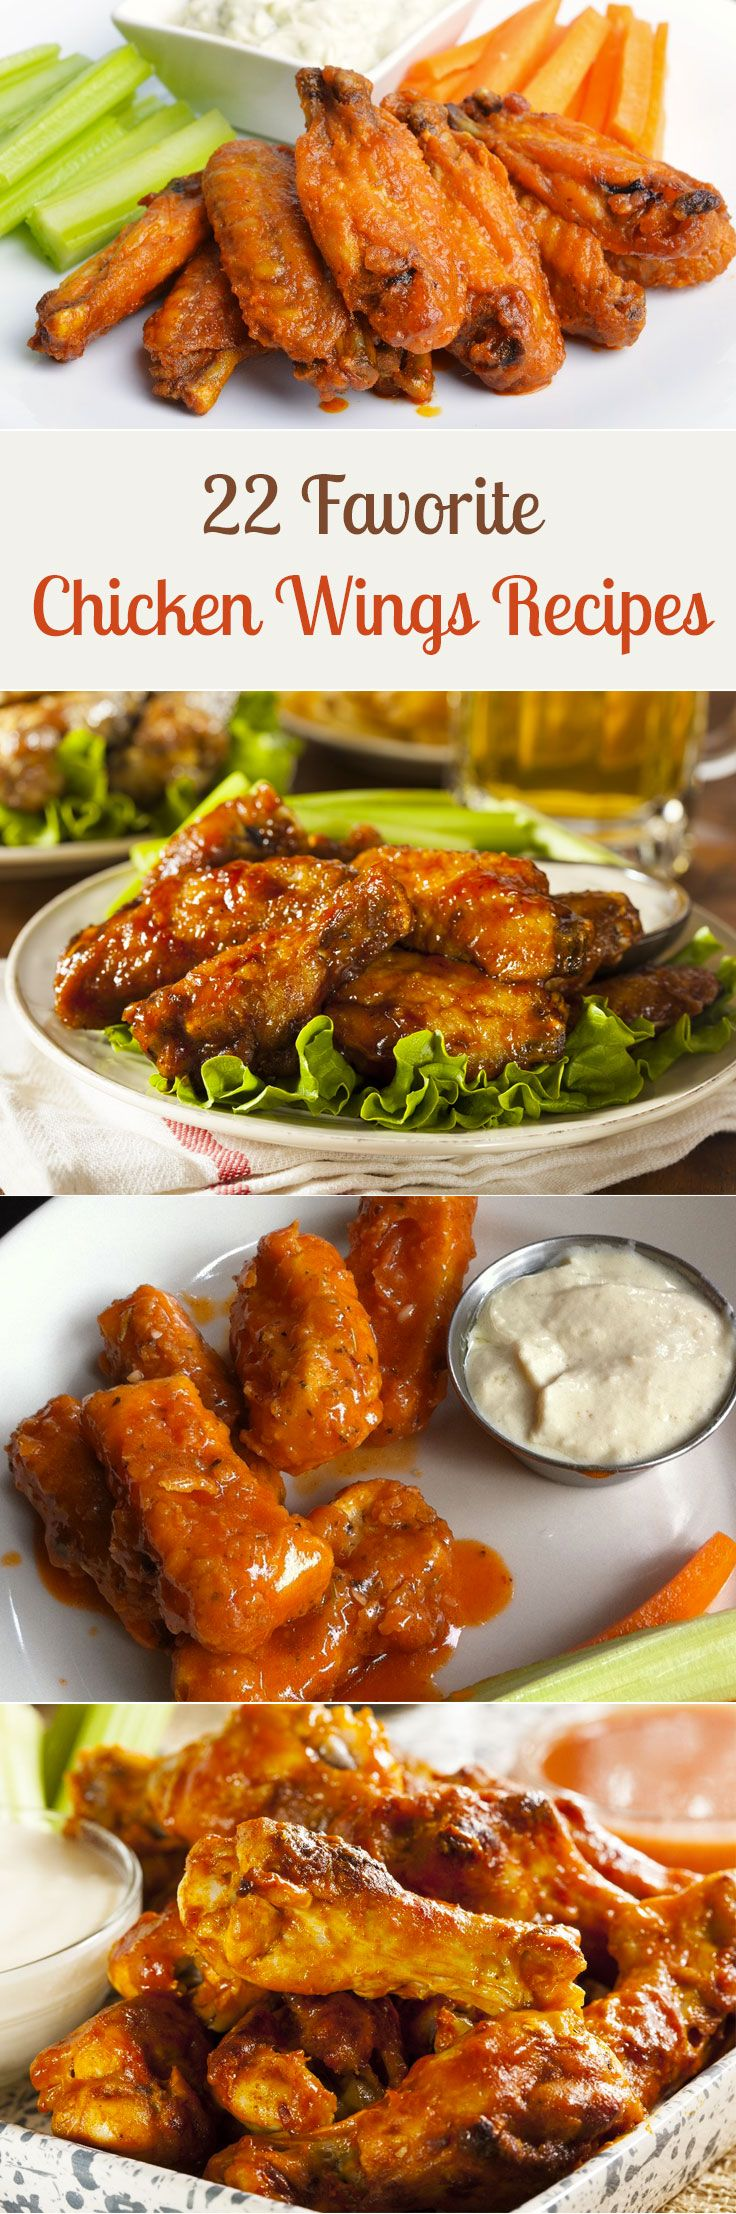 22 Favorite Chicken Wings Recipes including Buffalo, Baked, Paleo Glazed, Sriracha Hot Wings, Copycat Chili's Boneless Buffalo Wings, Honey Mustard, Slow Cooker Sticky Chicken Wings, Thai Curry, Sweet and Spicy Honey, Honey Soy, BBQ Ranch, Korean BBQ, Bourbon Spice Barbecue, Carmelized, Ginger Honey, Jamaican, and more!